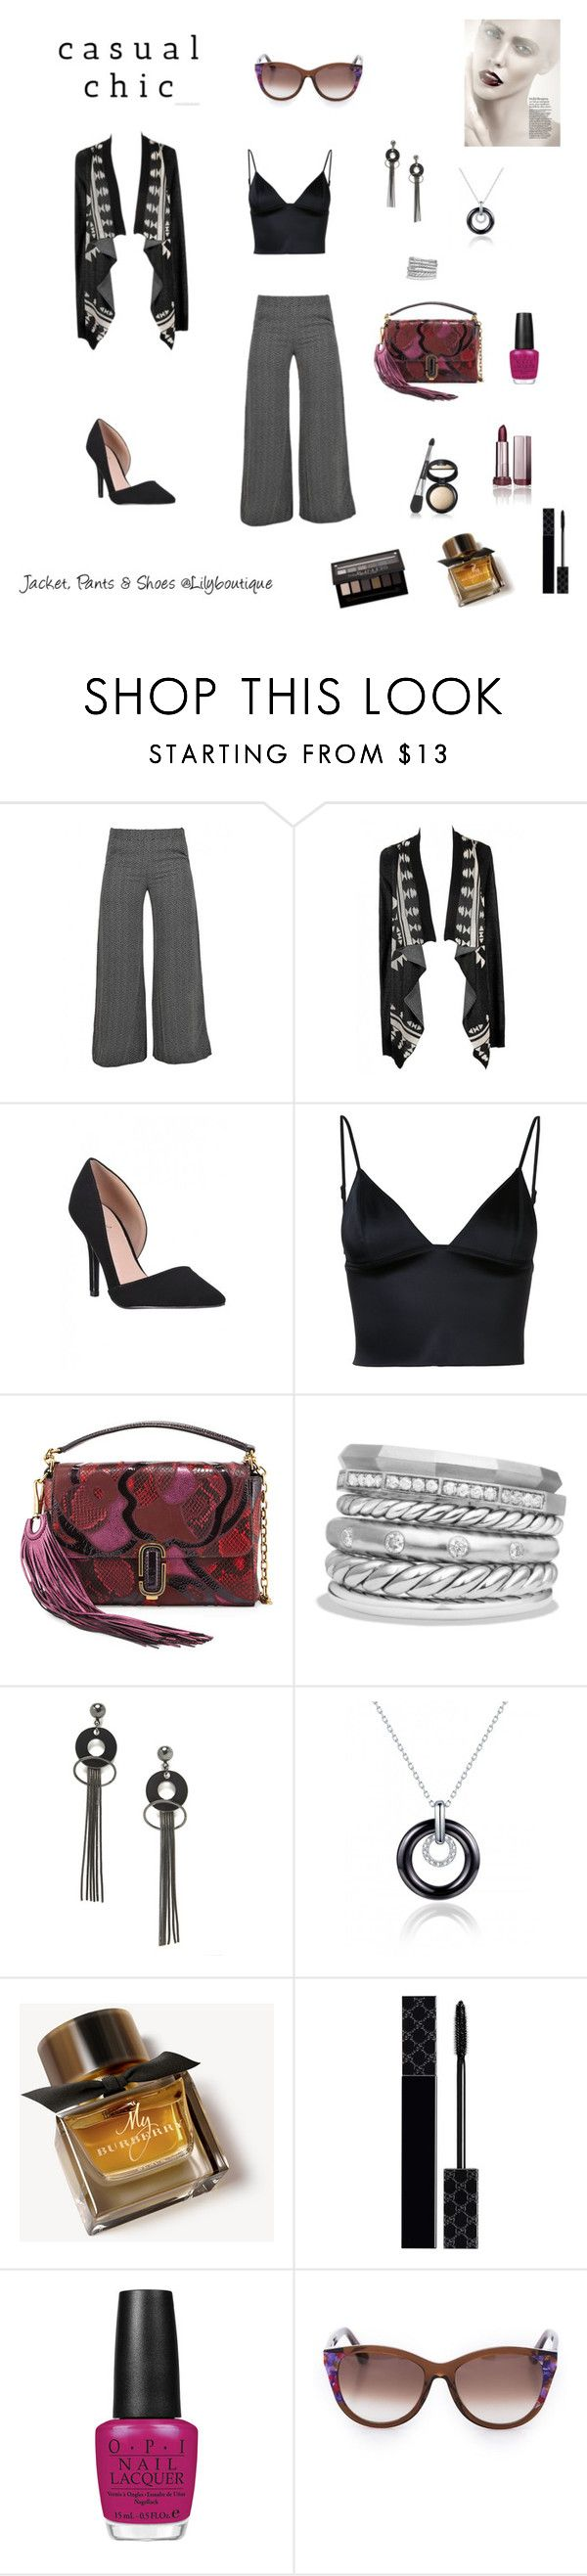 """""""Casual Chic"""" by rboowybe ❤ liked on Polyvore featuring T By Alexander Wang, Marc Jacobs, David Yurman, Jeweliq, Burberry, Gucci, COVERGIRL, OPI, Maybelline and Thierry Lasry"""